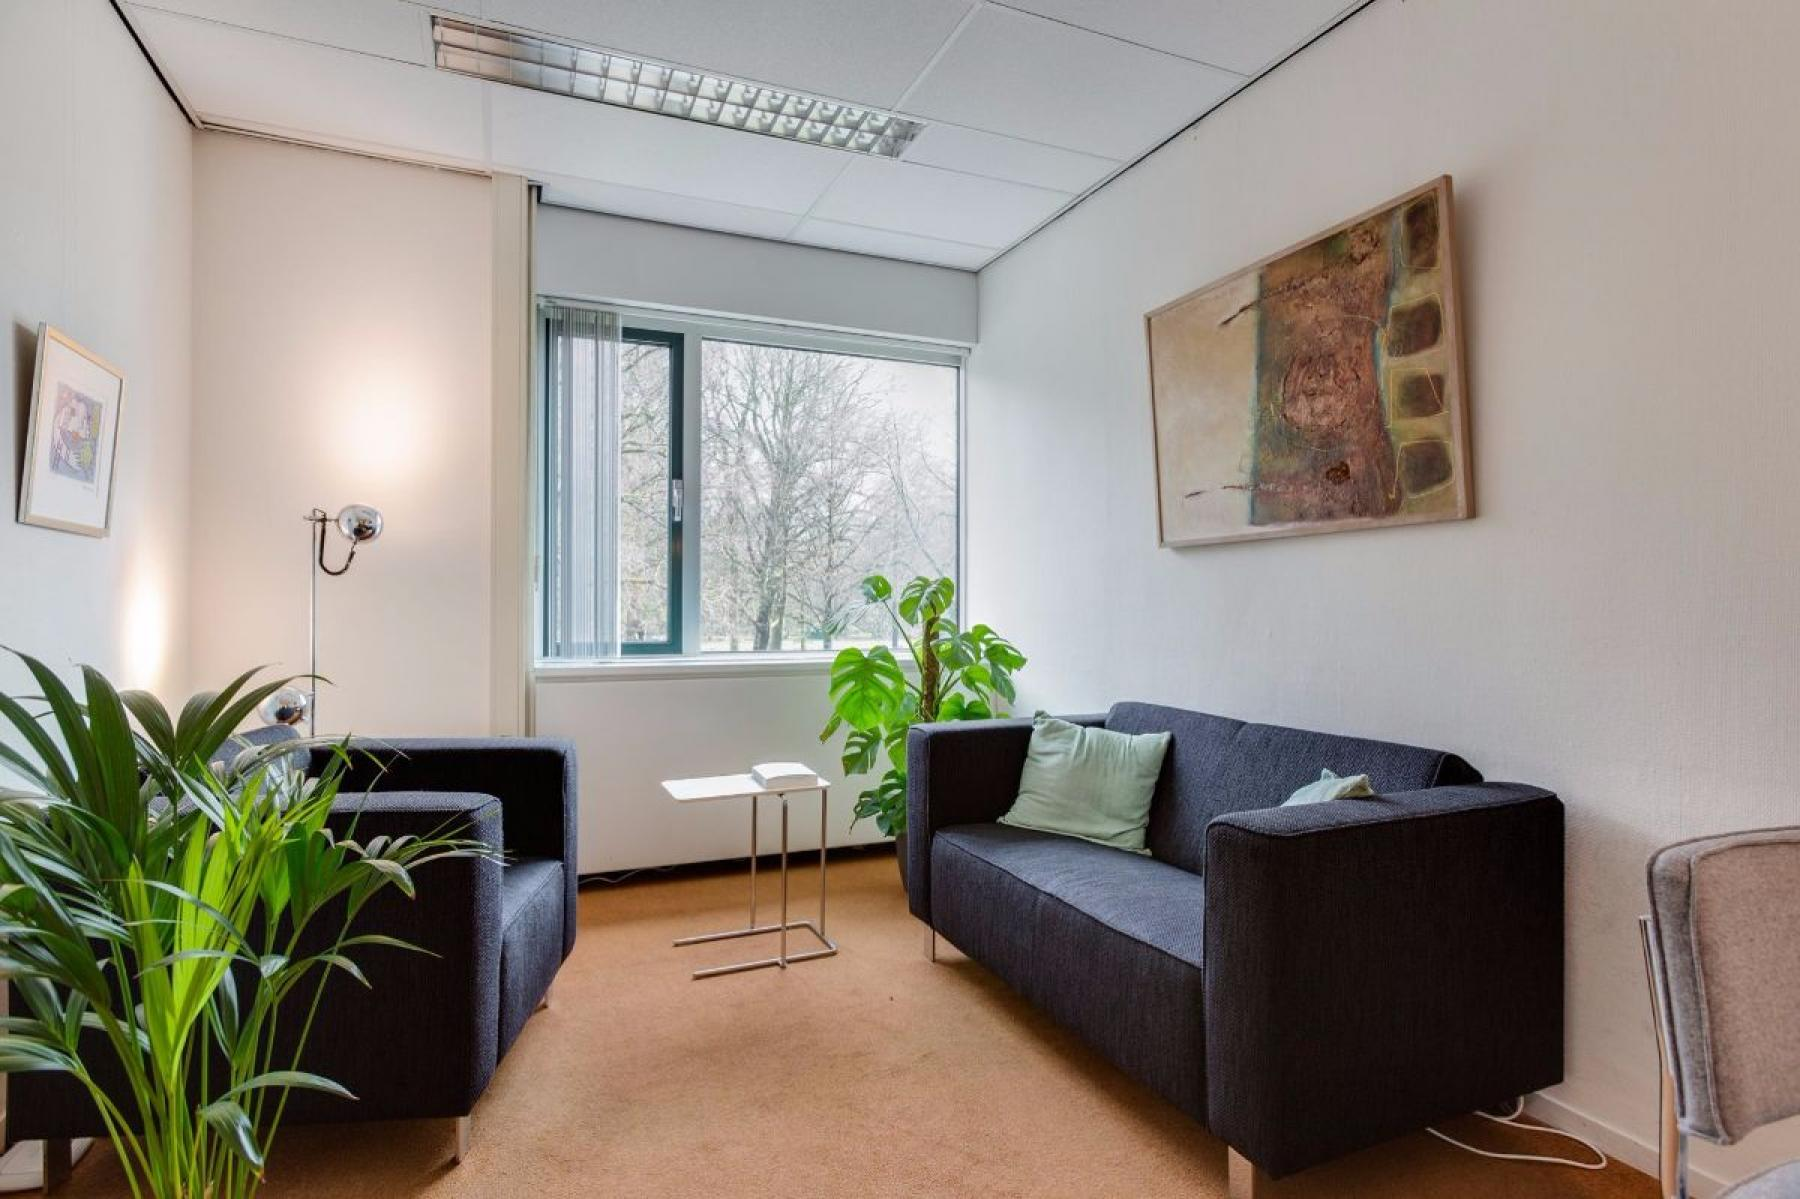 Couches in office space Haarlem